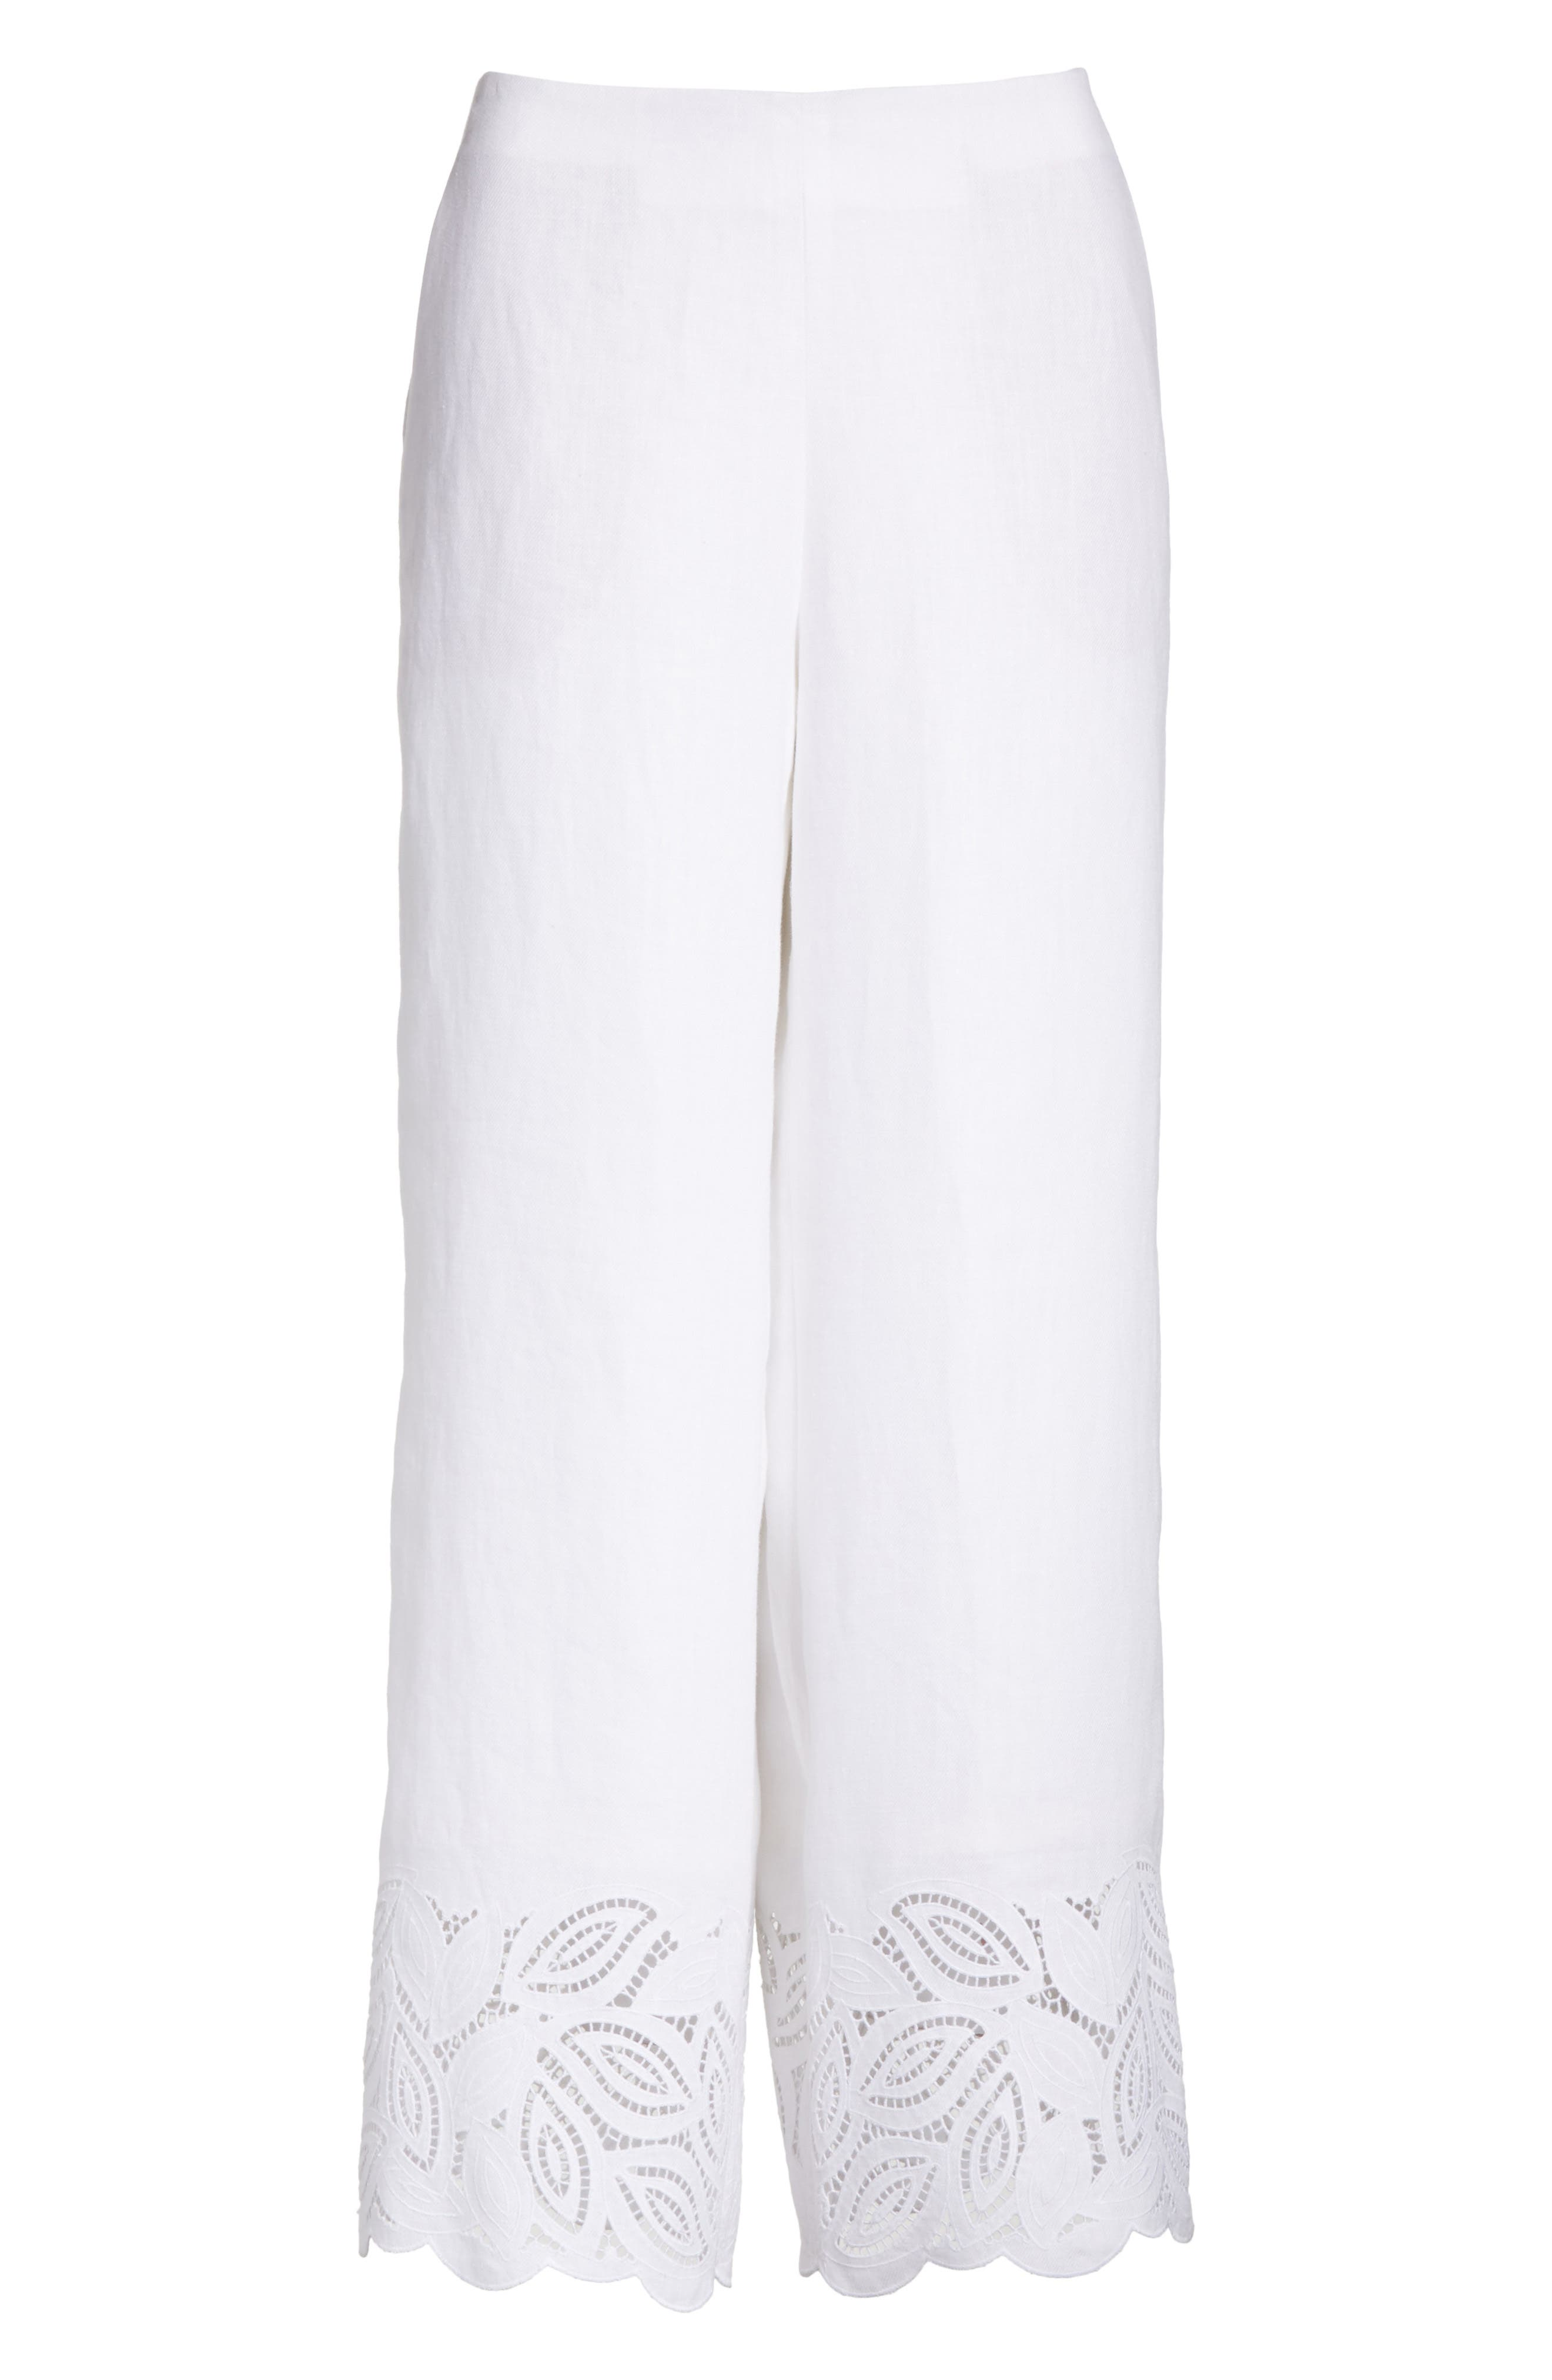 Morton Embroidered Pants,                             Alternate thumbnail 6, color,                             White